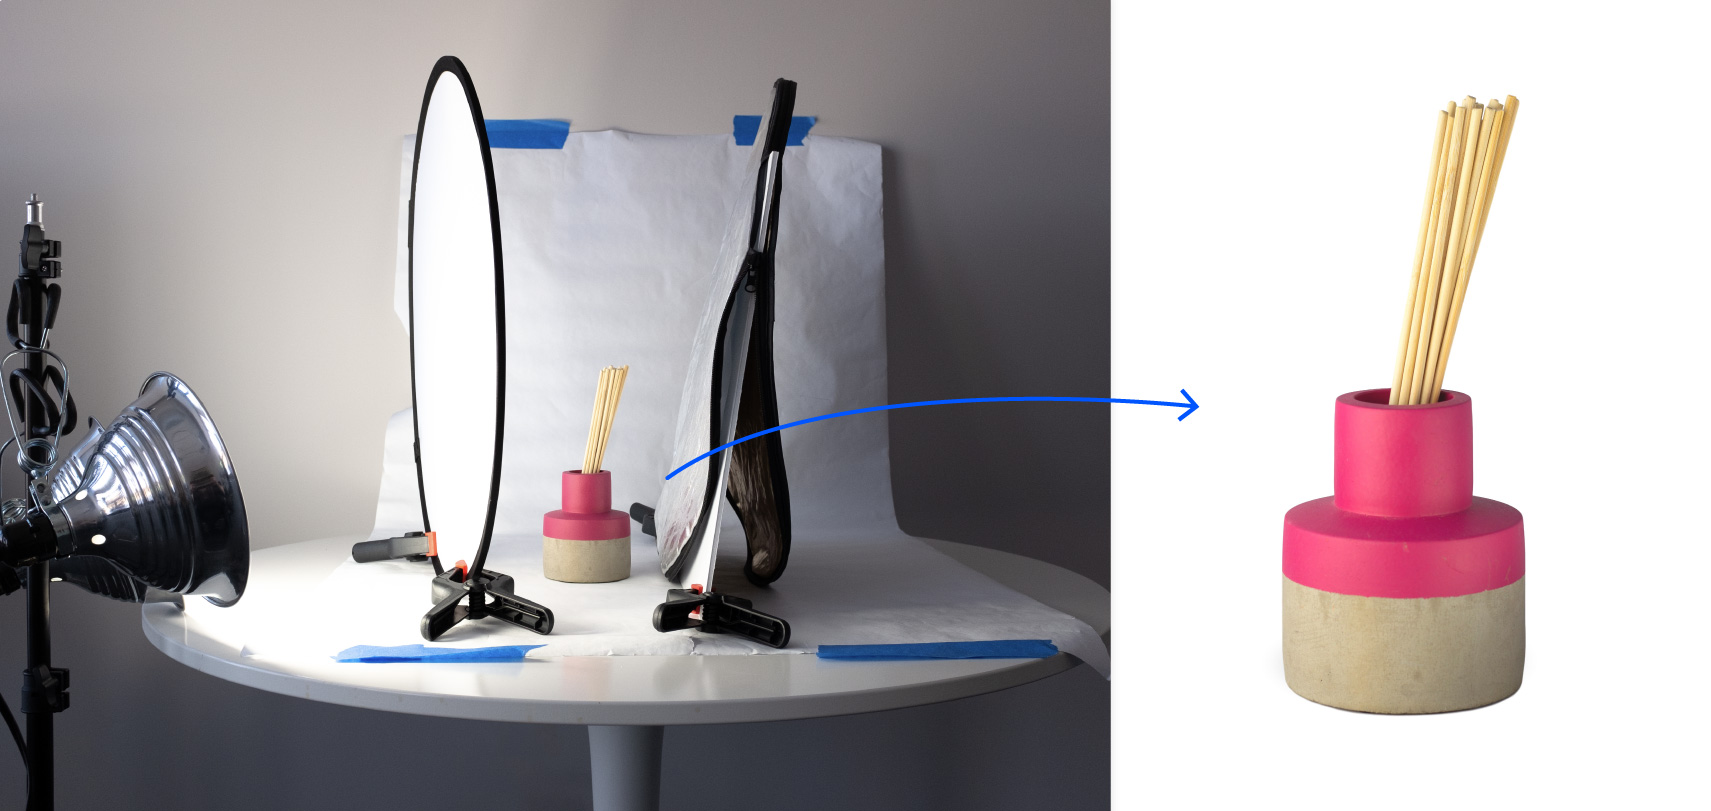 Our photo studio and product photo taken under 100 dollars